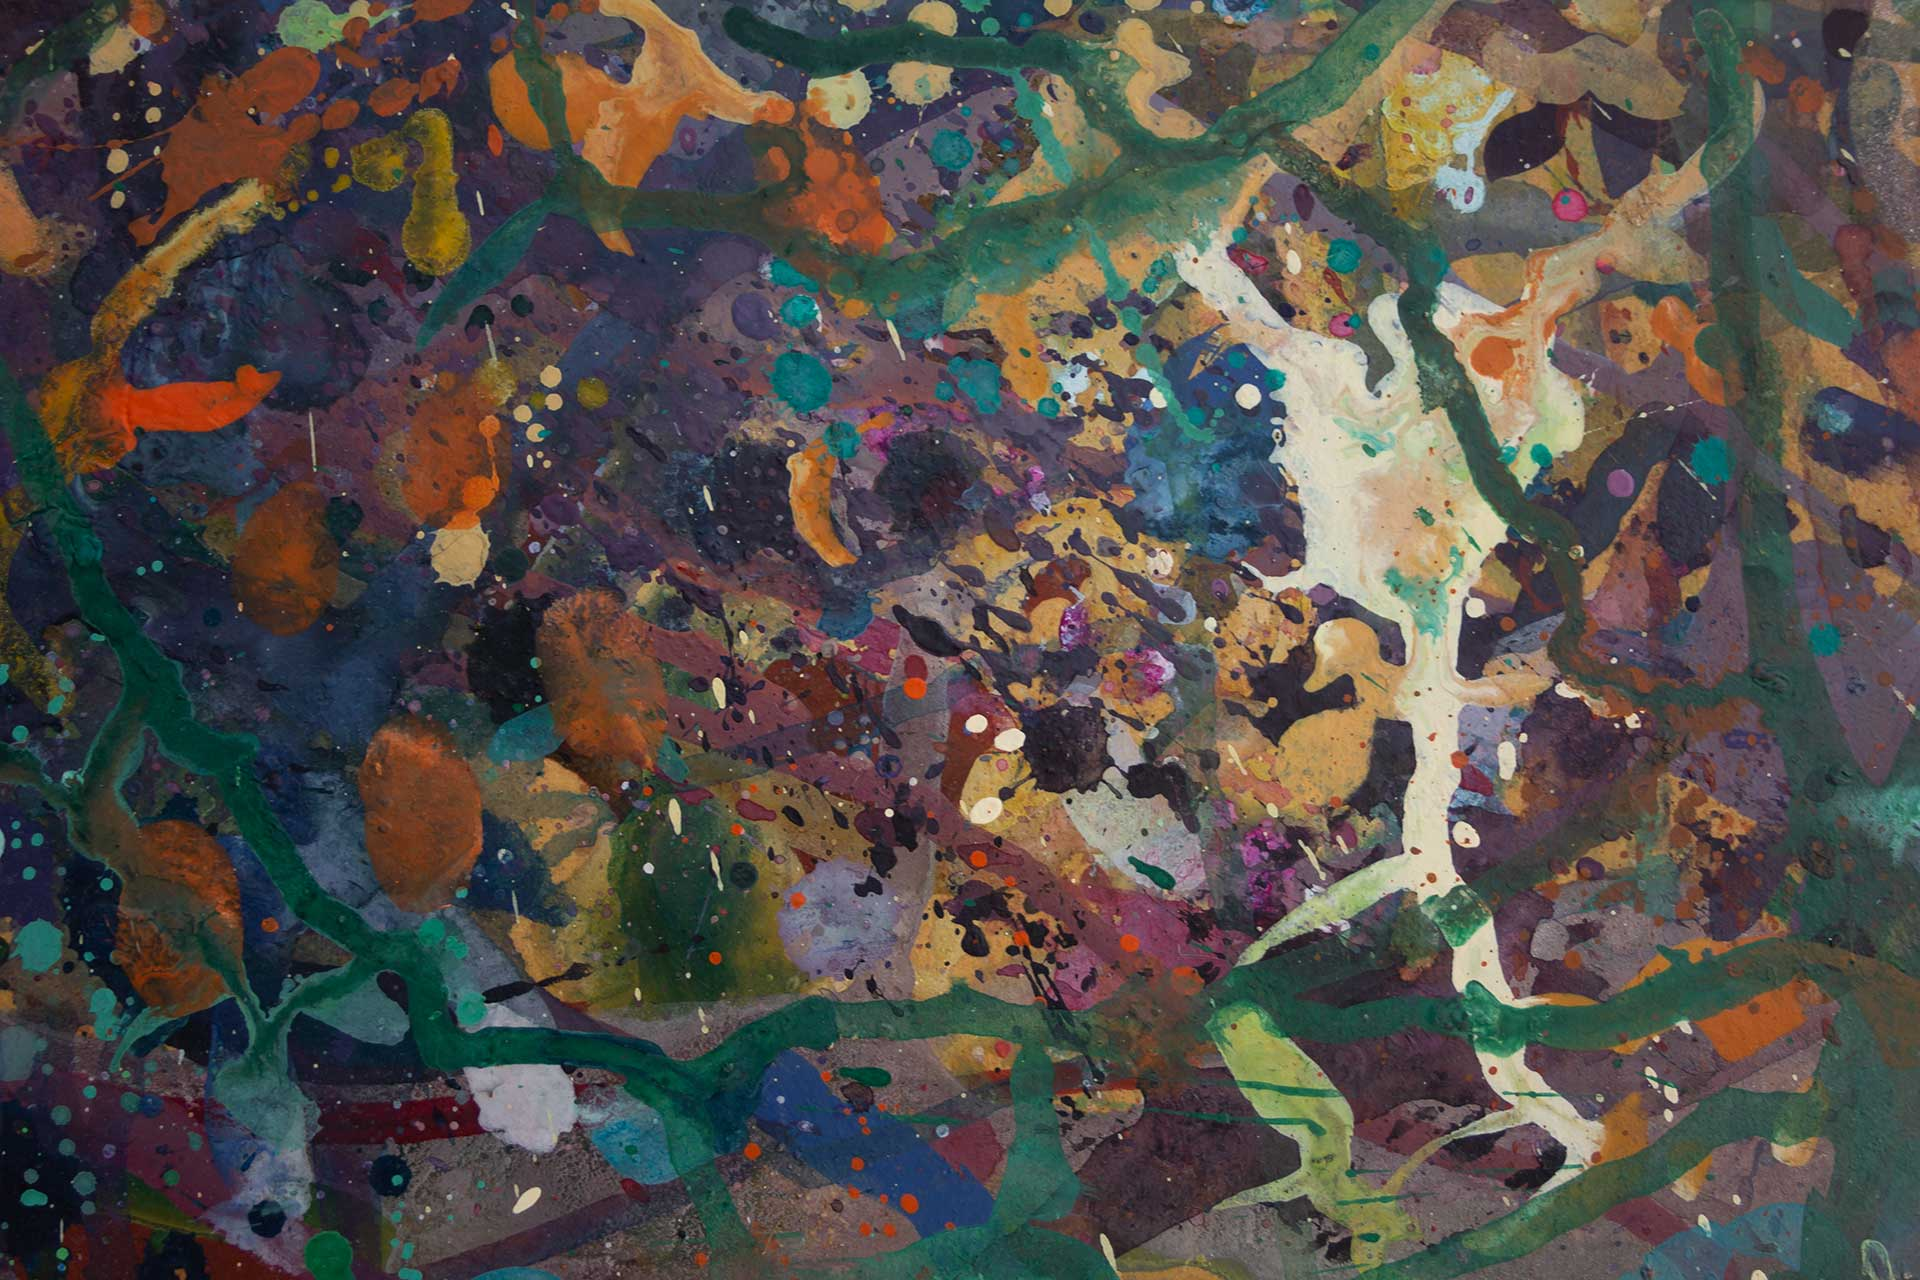 Abstract expressionism painting - Alien teddy bear dance party - Detail 3